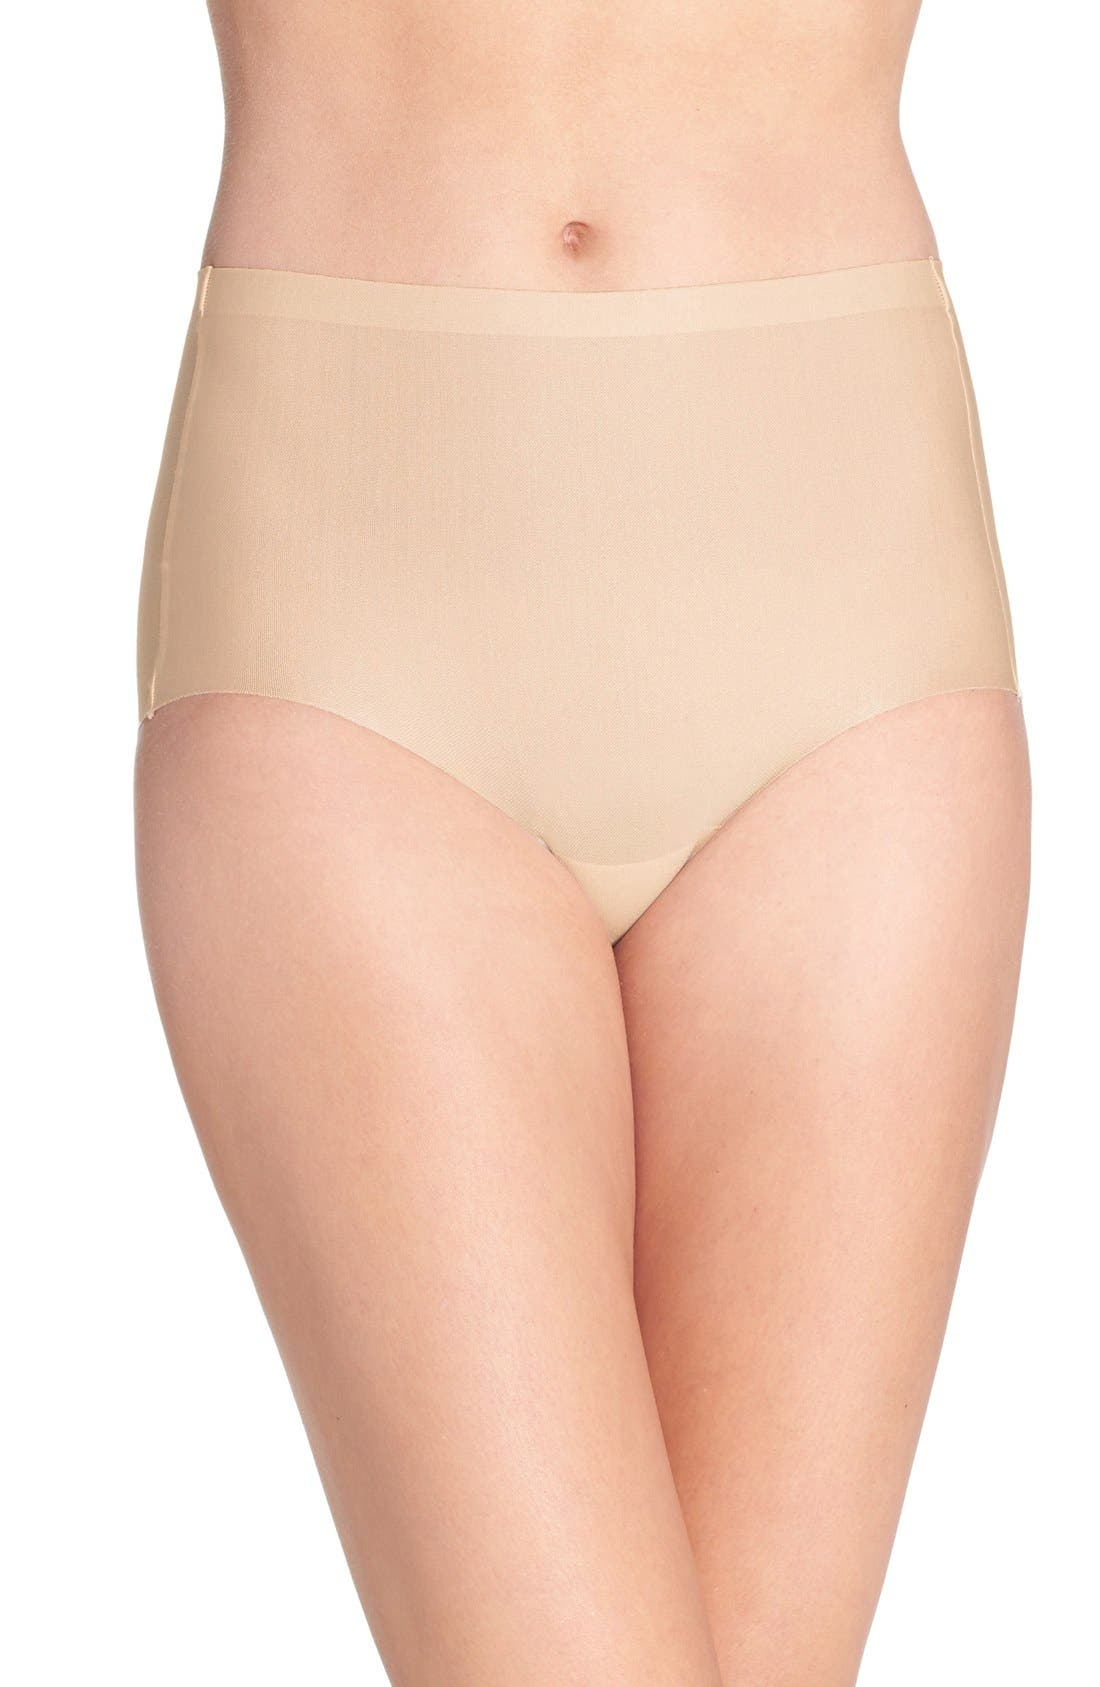 High Waist Smoothing Briefs,                             Main thumbnail 1, color,                             Sand